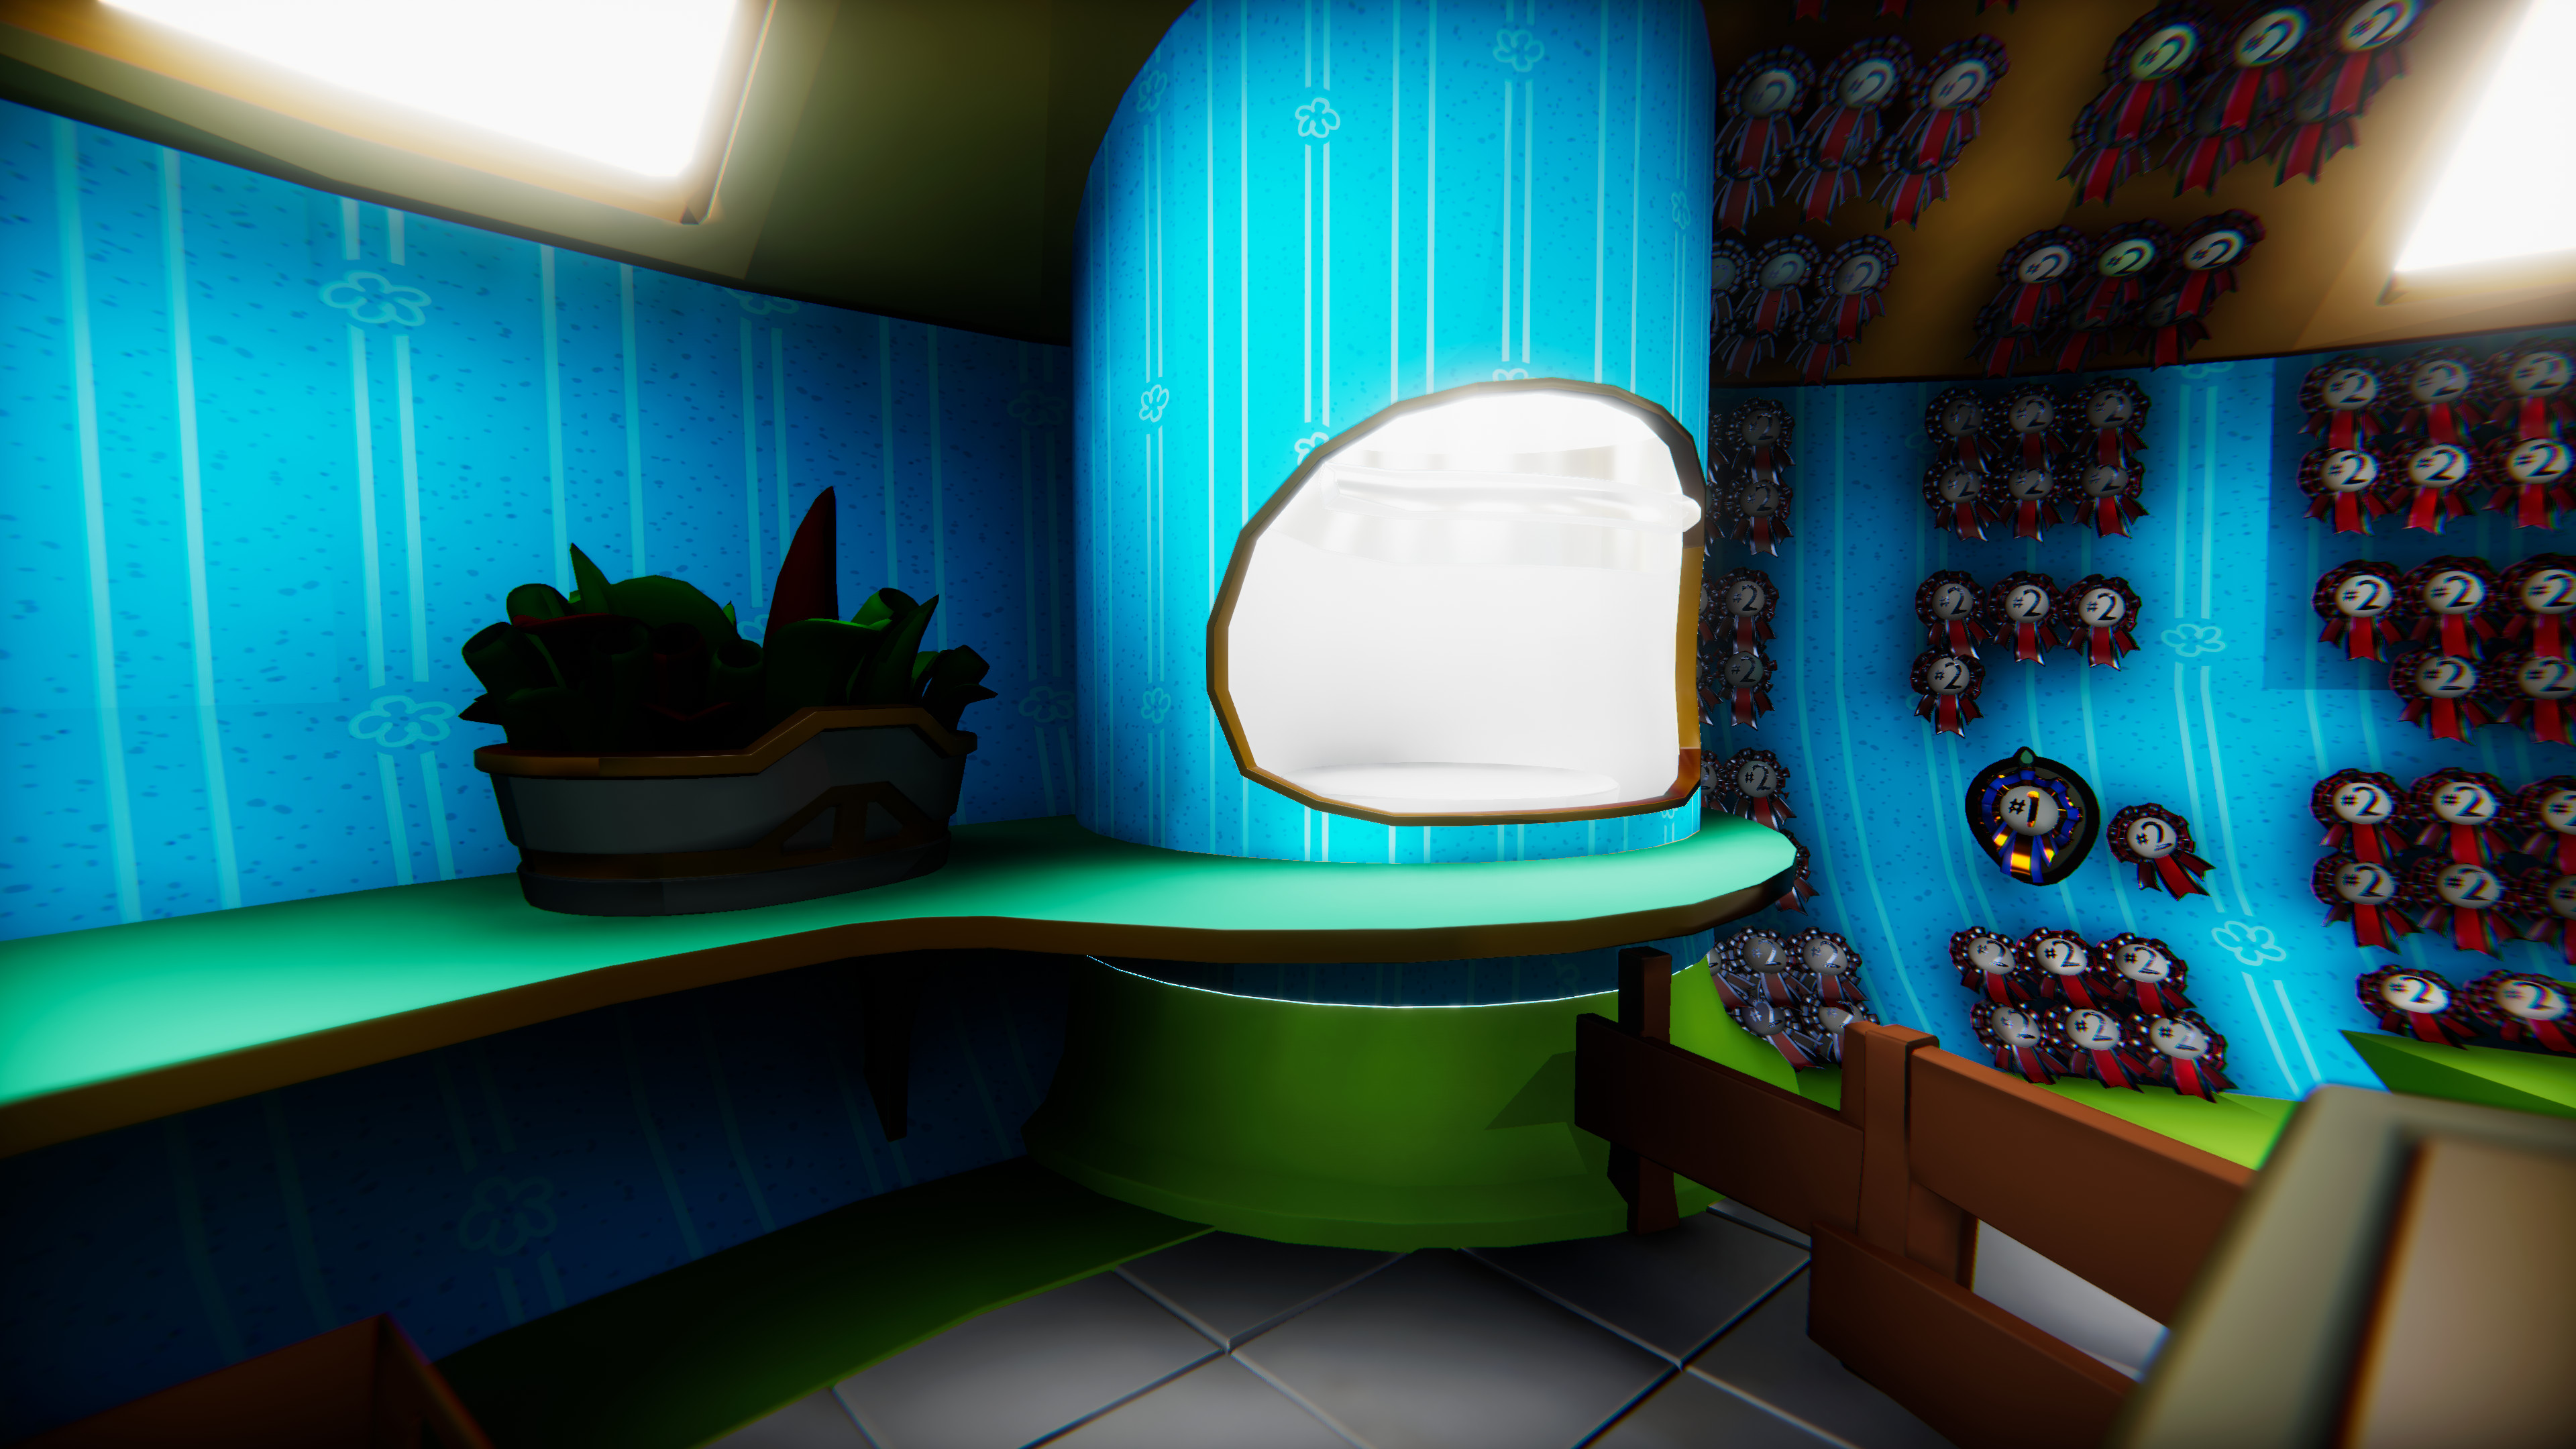 Despite only being used a handful of times, I designed and placed the teleporter like a microwave. A piece of technology that is very powerful, but also just a regular part of every day life to the characters in the game.